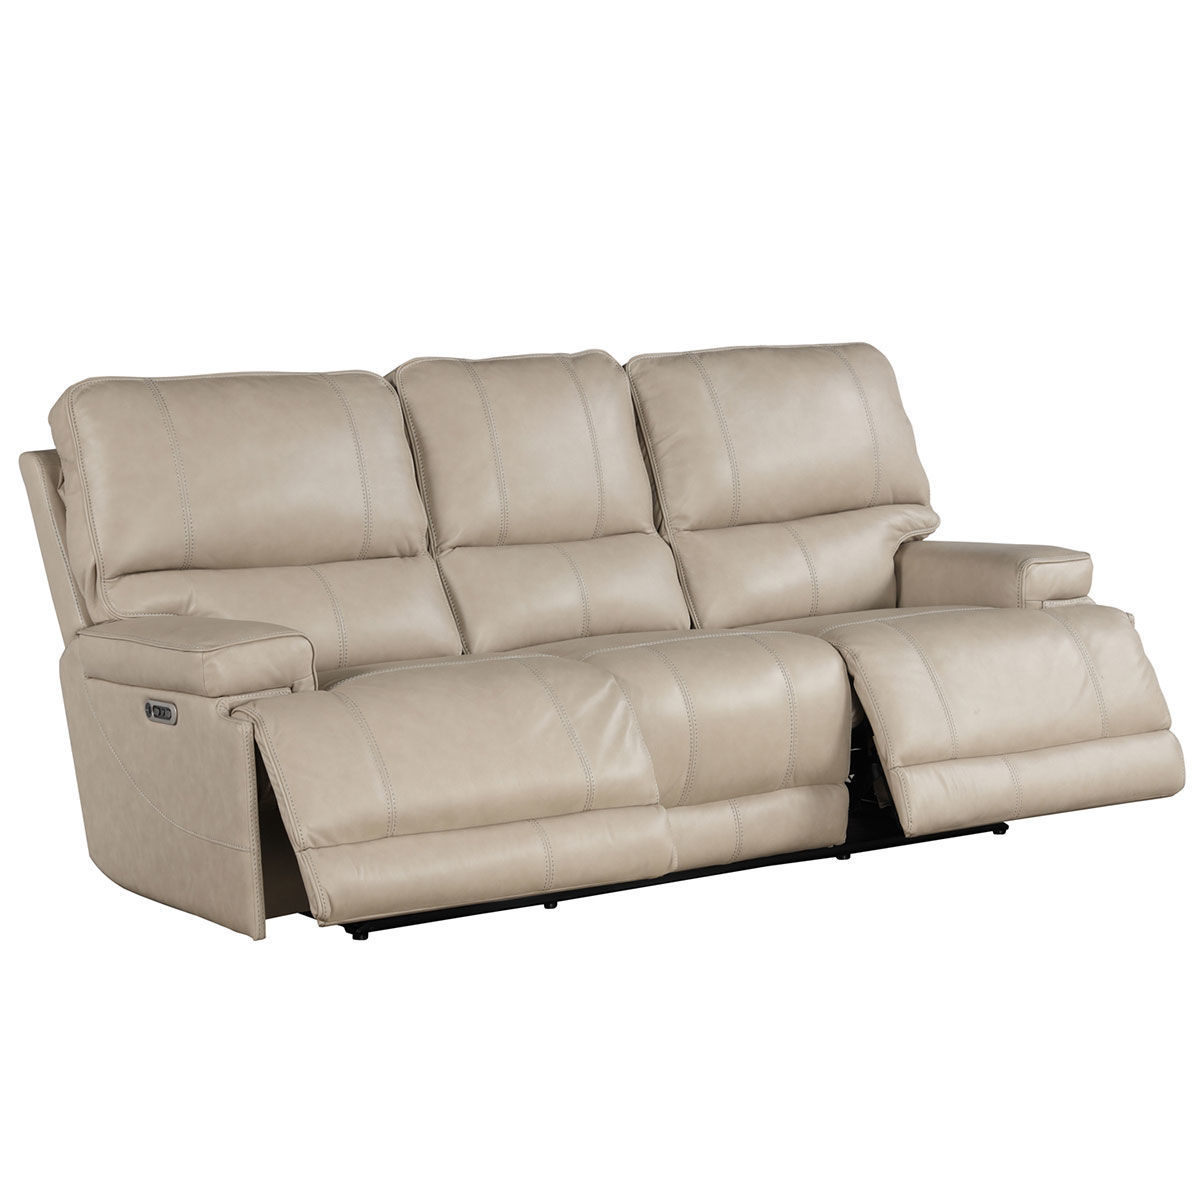 Picture of WHISTLER CORDLESS SOFA W/ POWER HEADREST IN LINEN